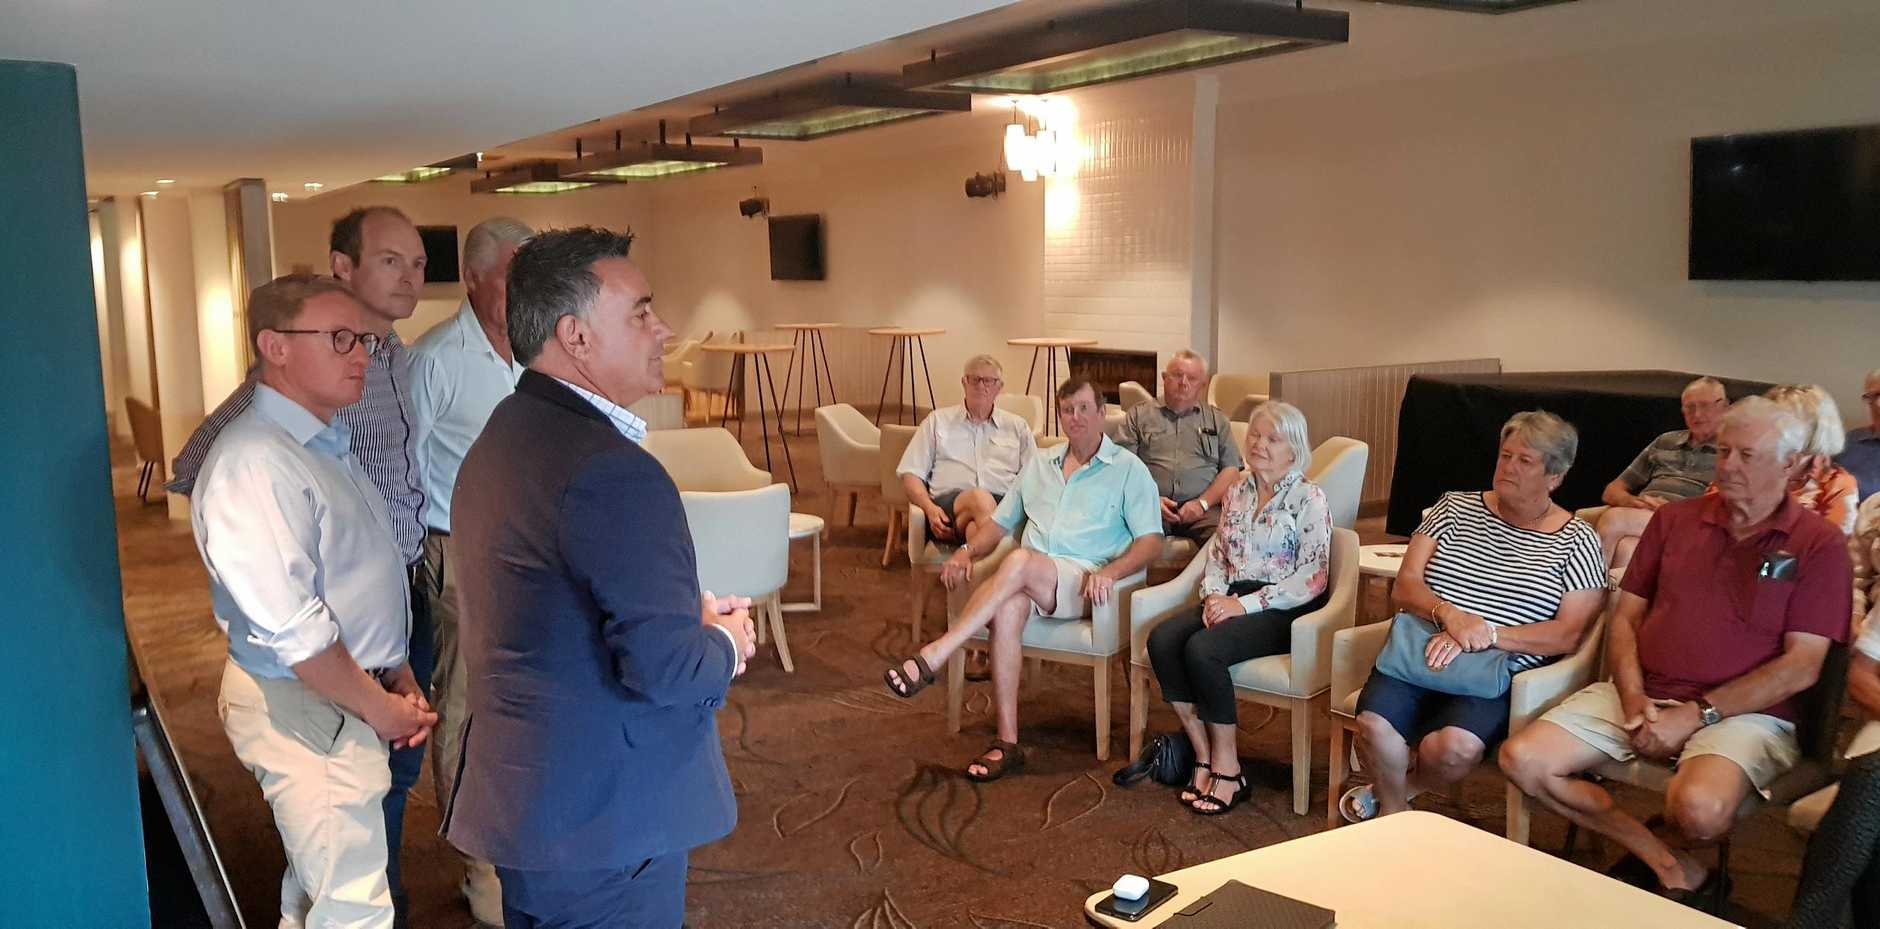 TRAVEL CARD: Deputy Premier John Barilaro (right) announcing the promise of a Regional Seniors Travel Card at the Ballina RSL Club prior to the state election.